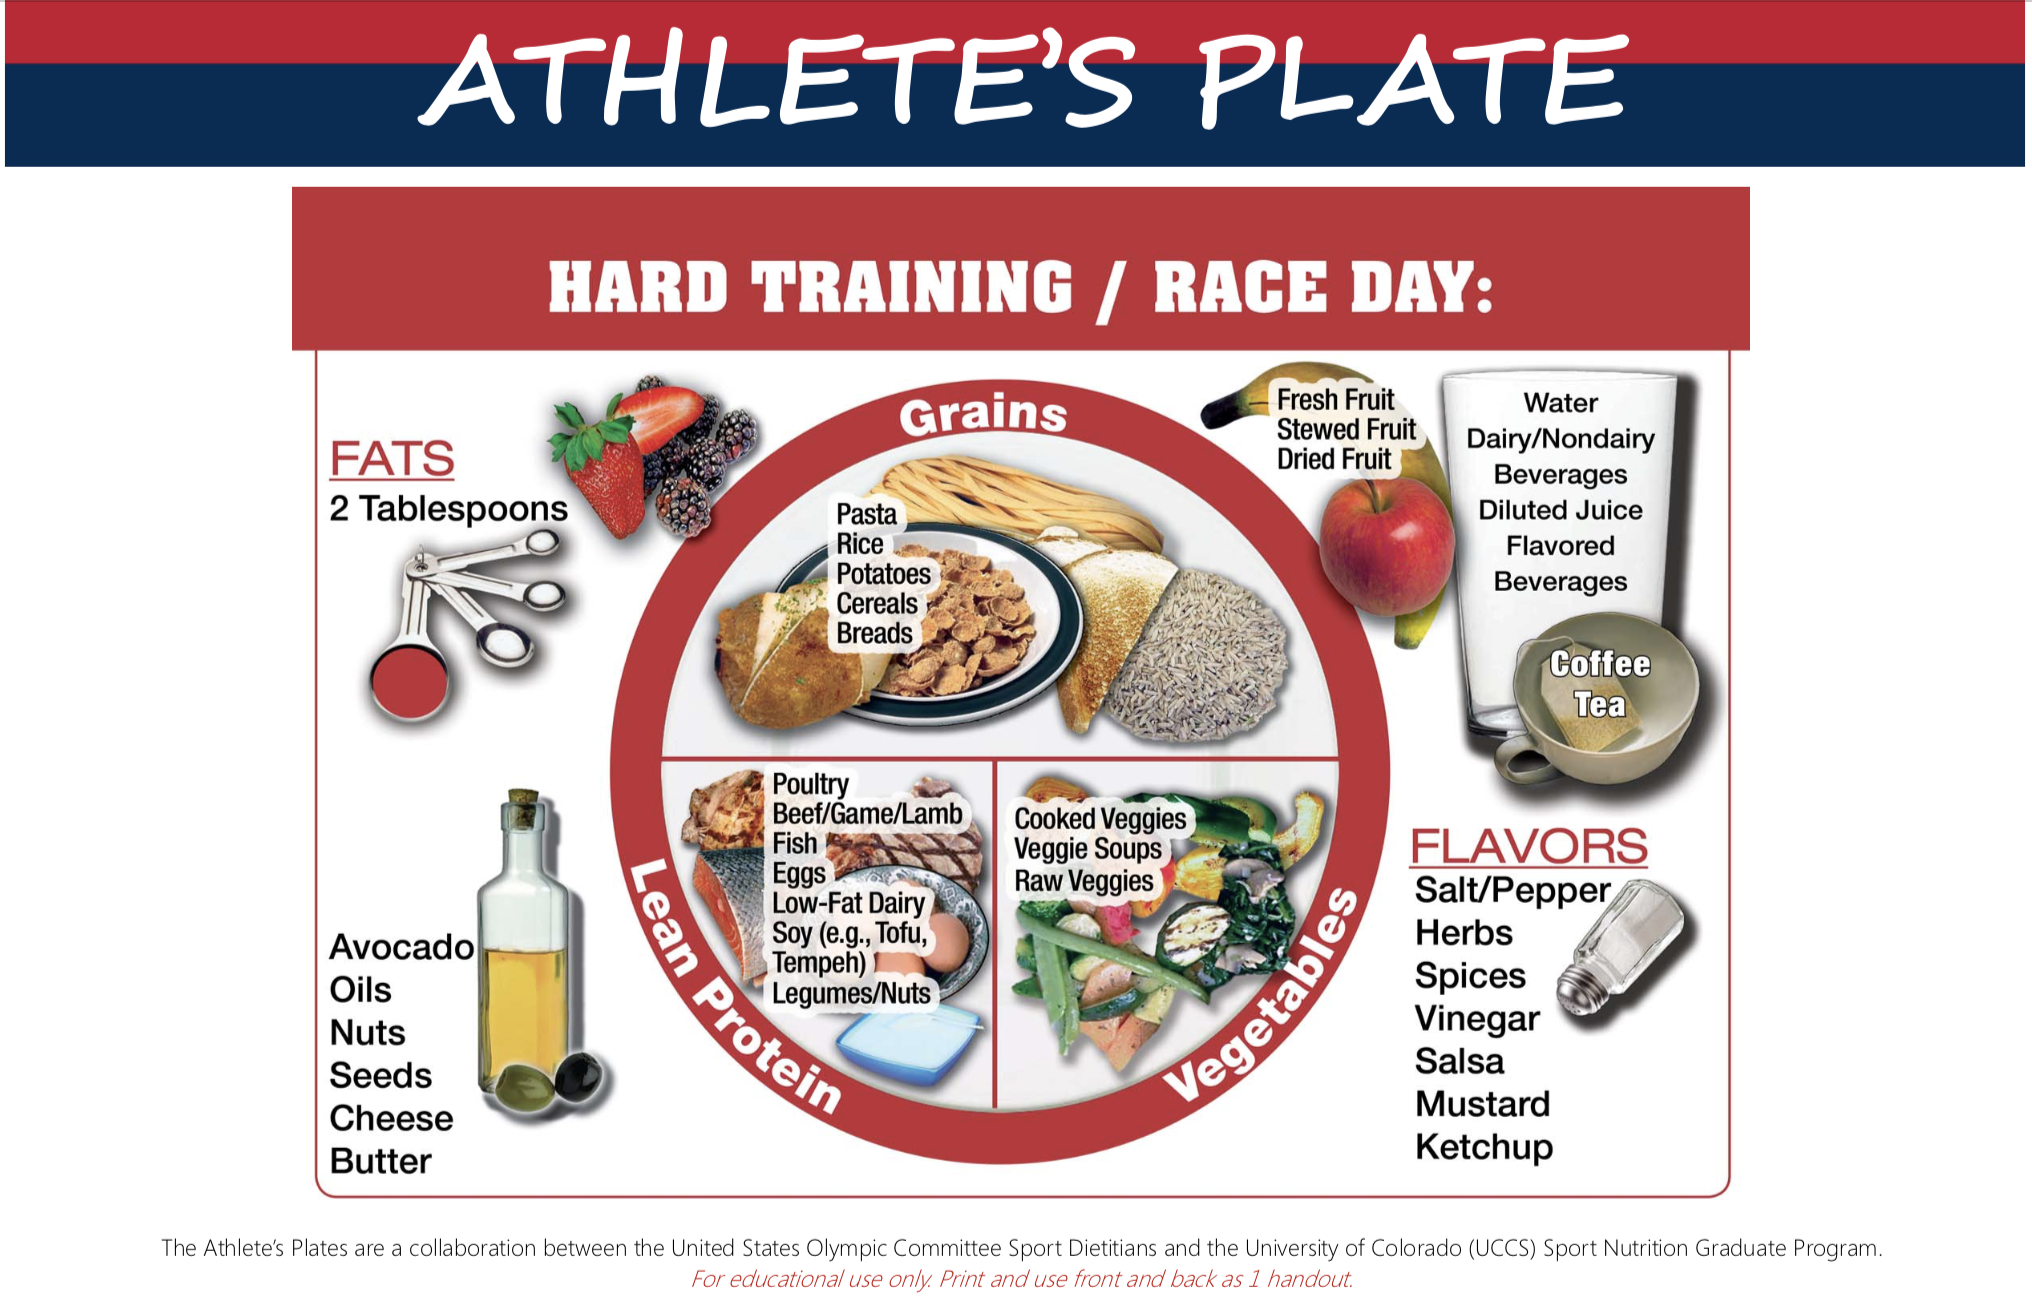 athlete's plate, race day